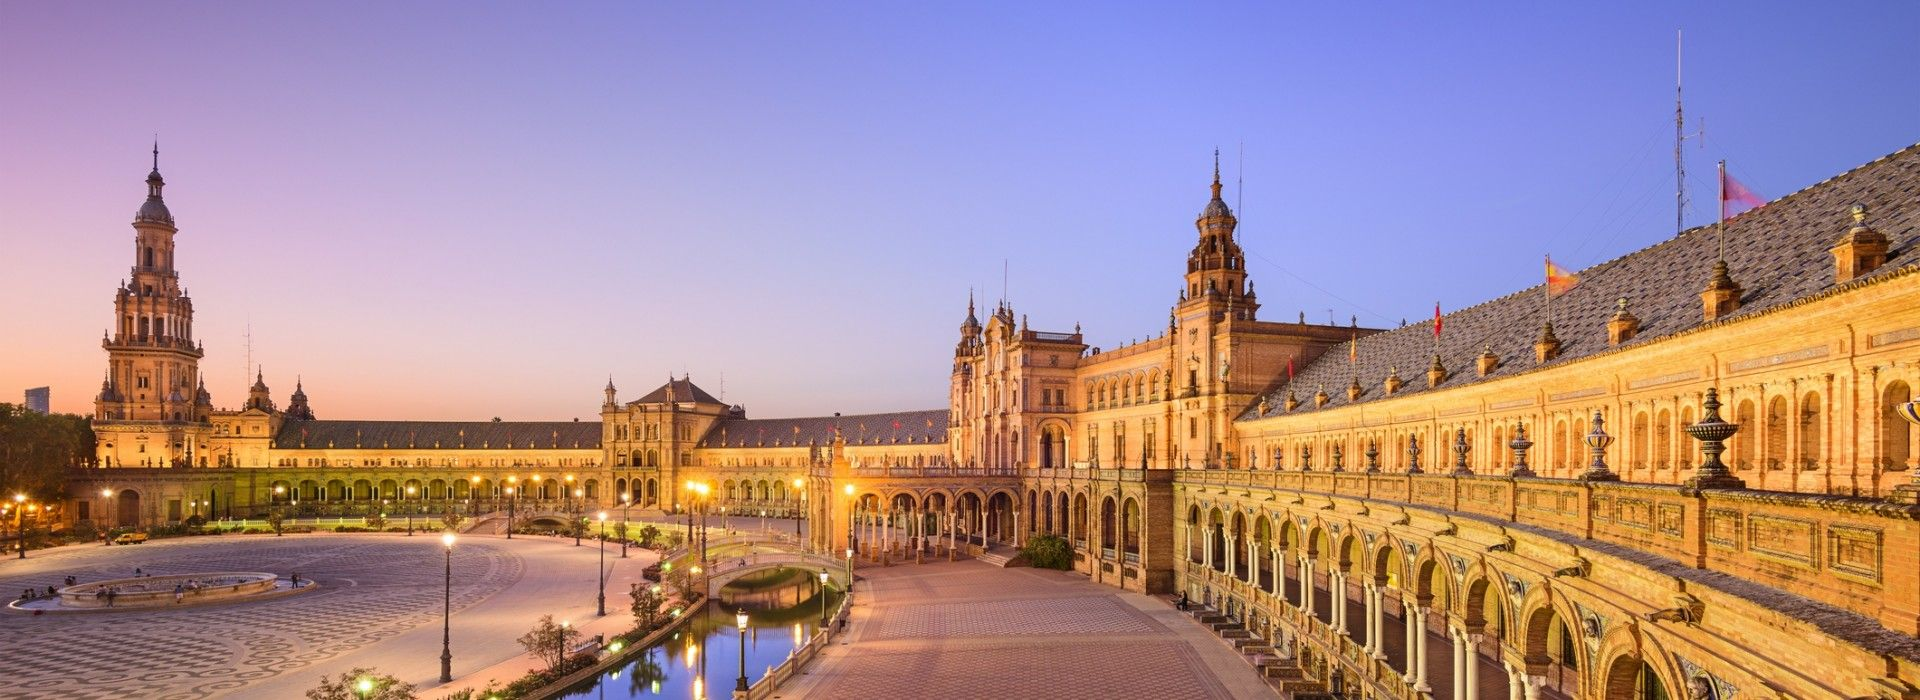 Party and nightlife Tours in Spain